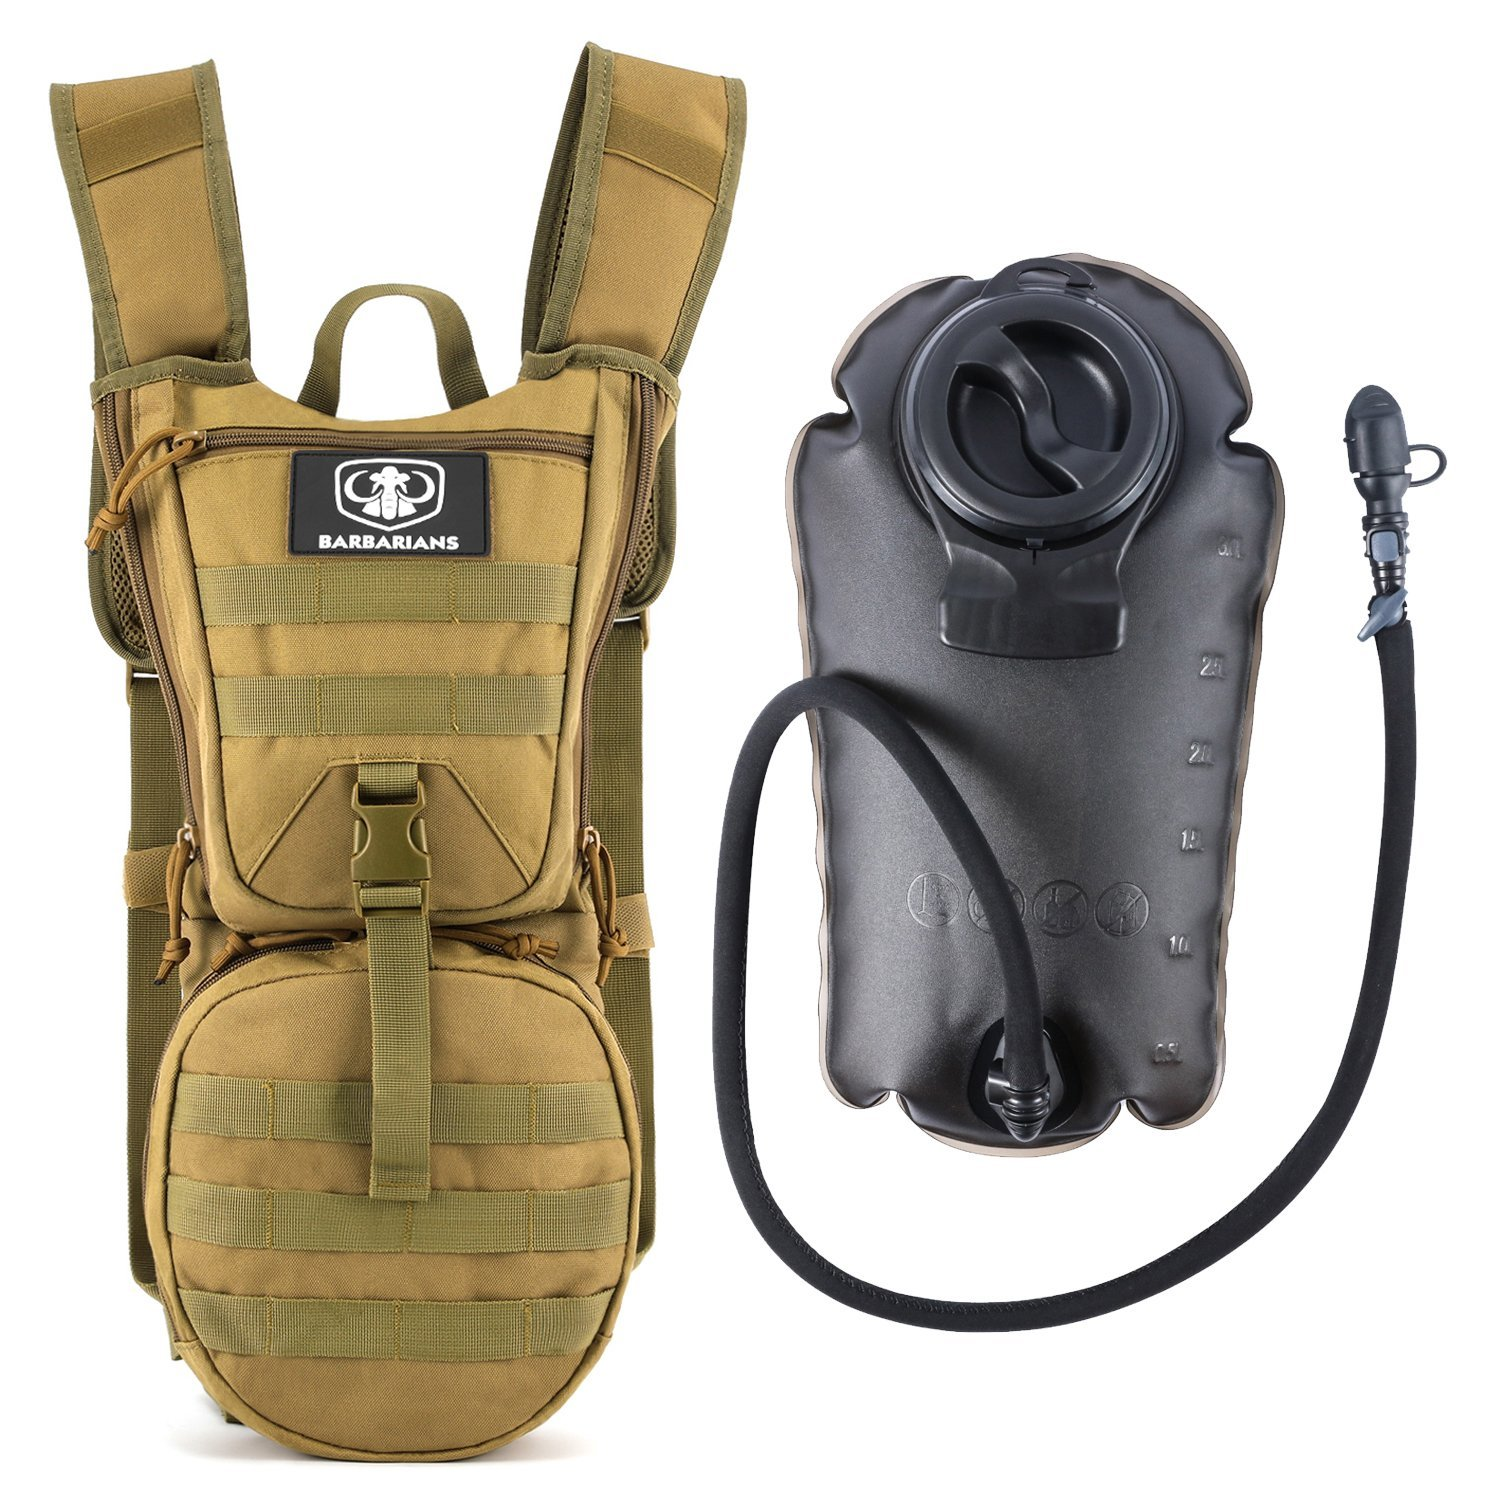 Tactical Hydration Pack Water Backpack with 3L Bladder, Barbarians Lightweight Military Molle Backpack (Green) by